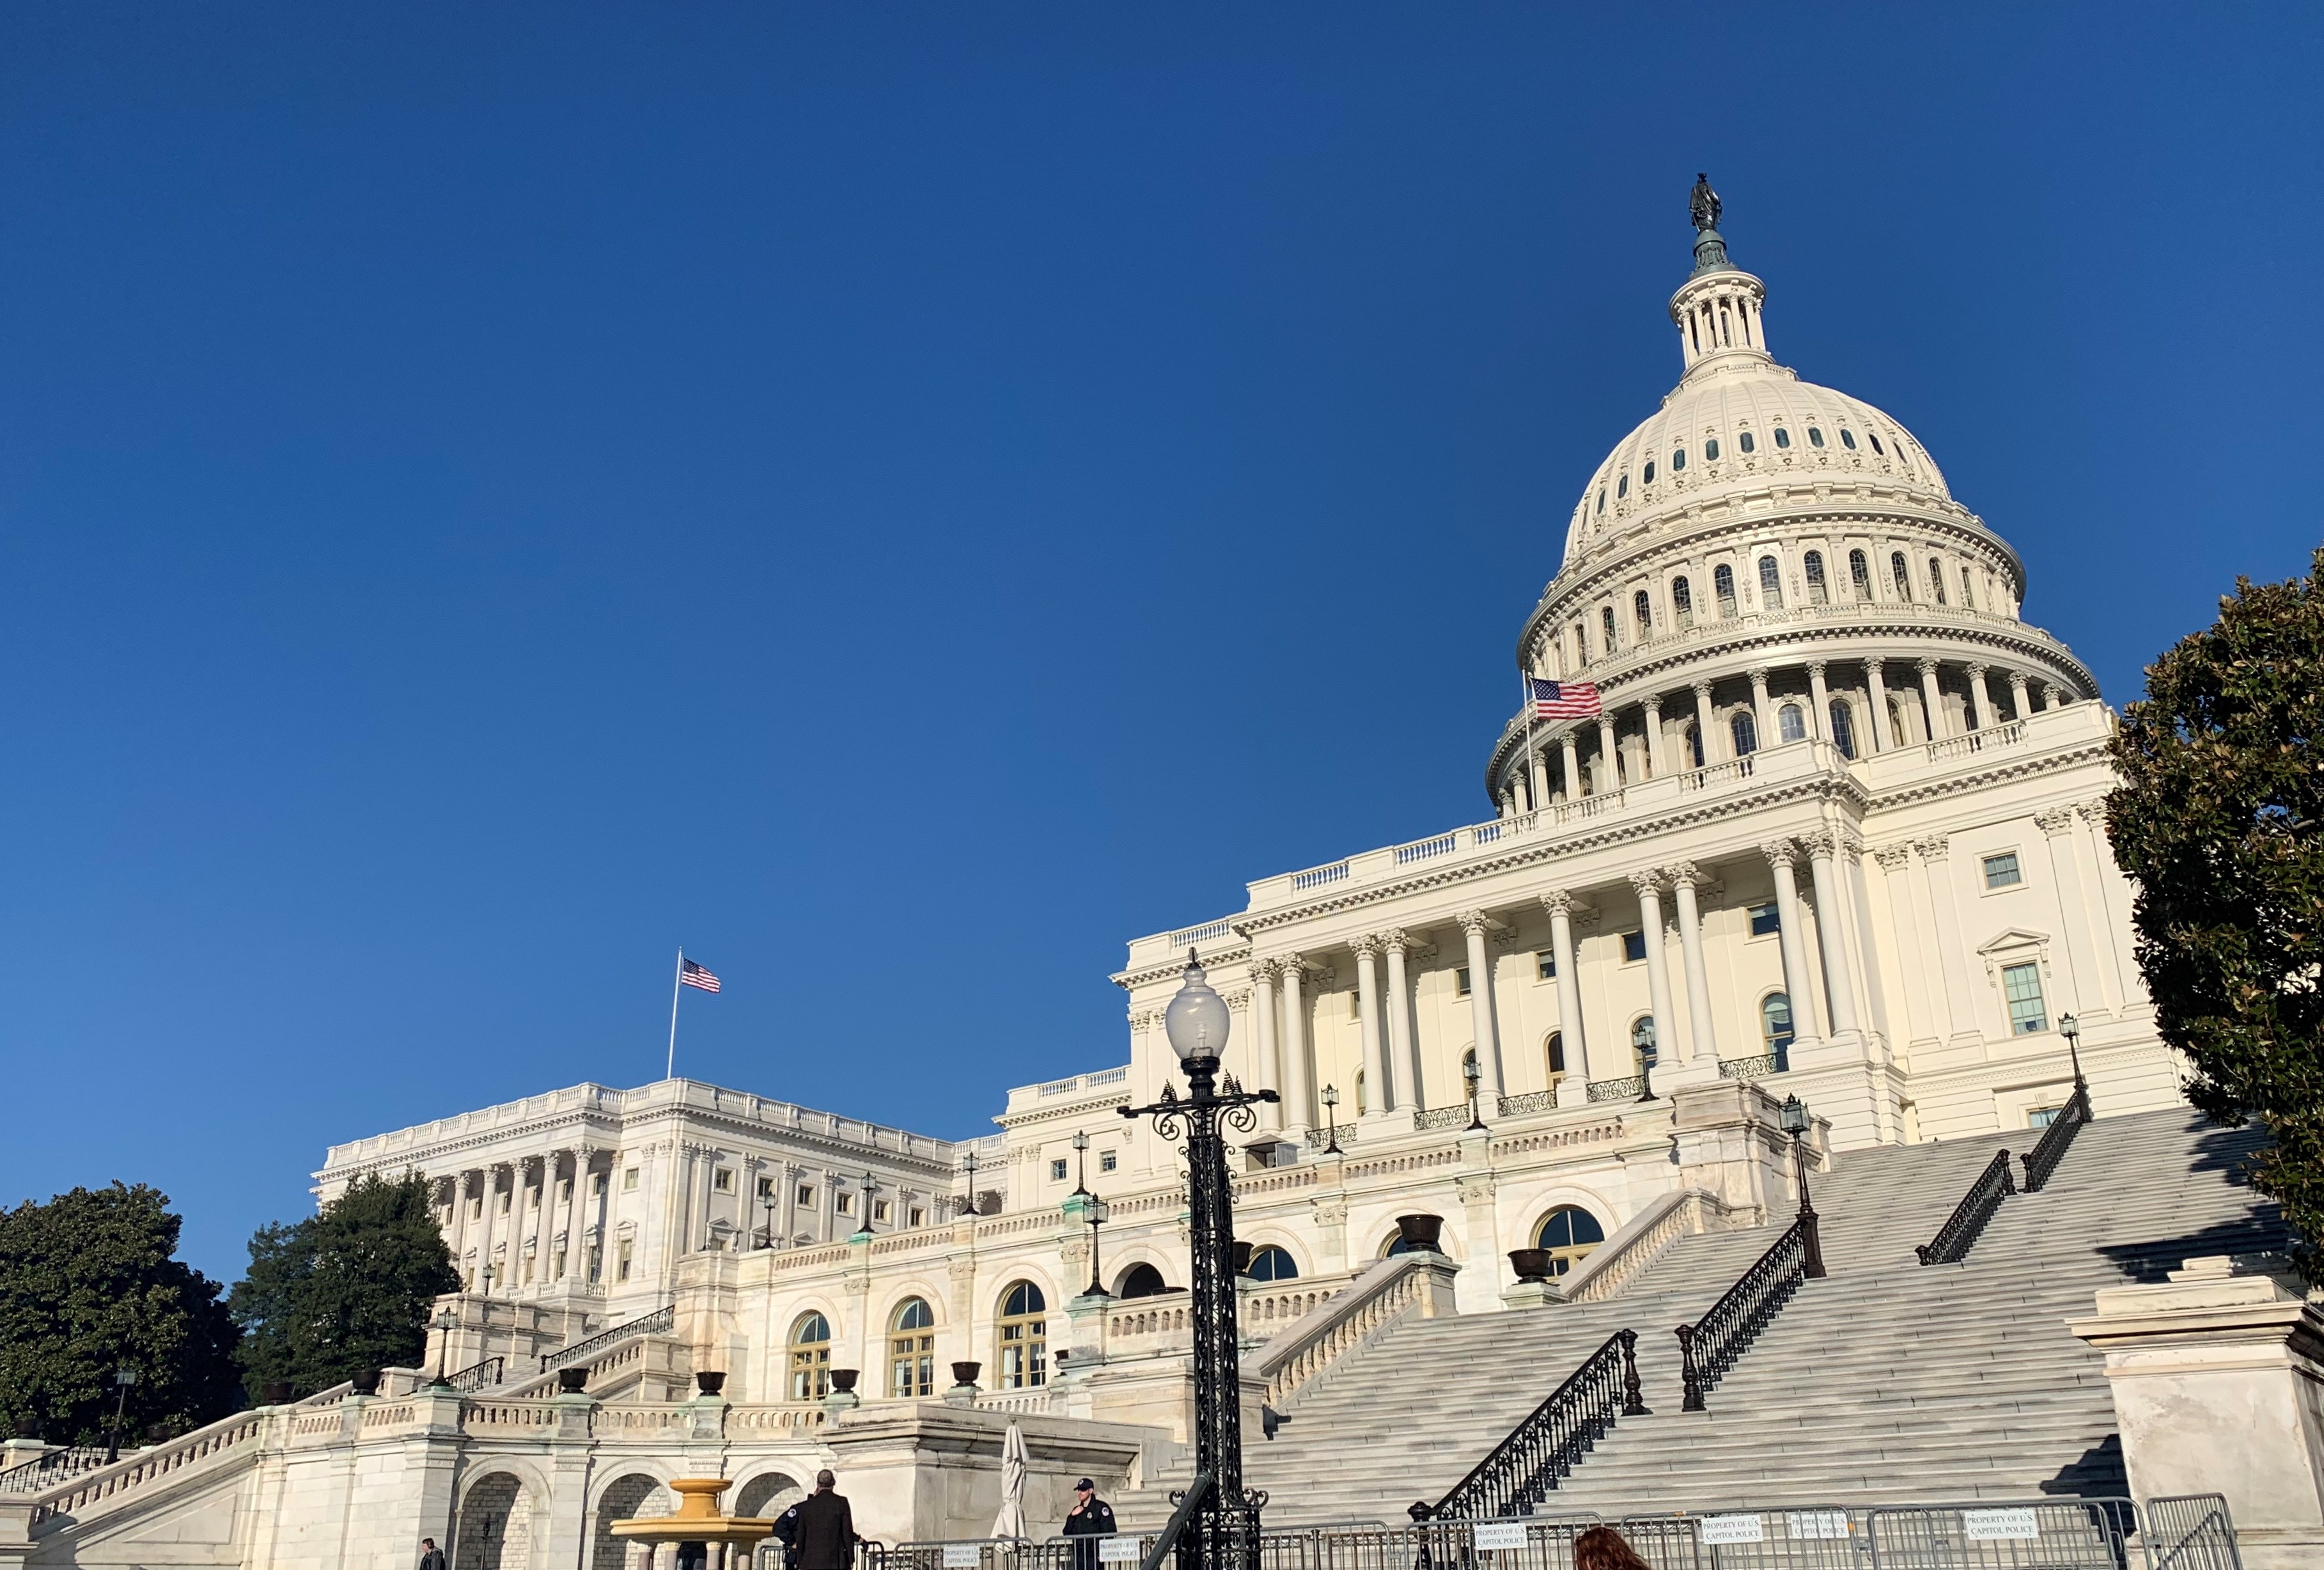 IFB calls for accurate reporting on Capitol Hill